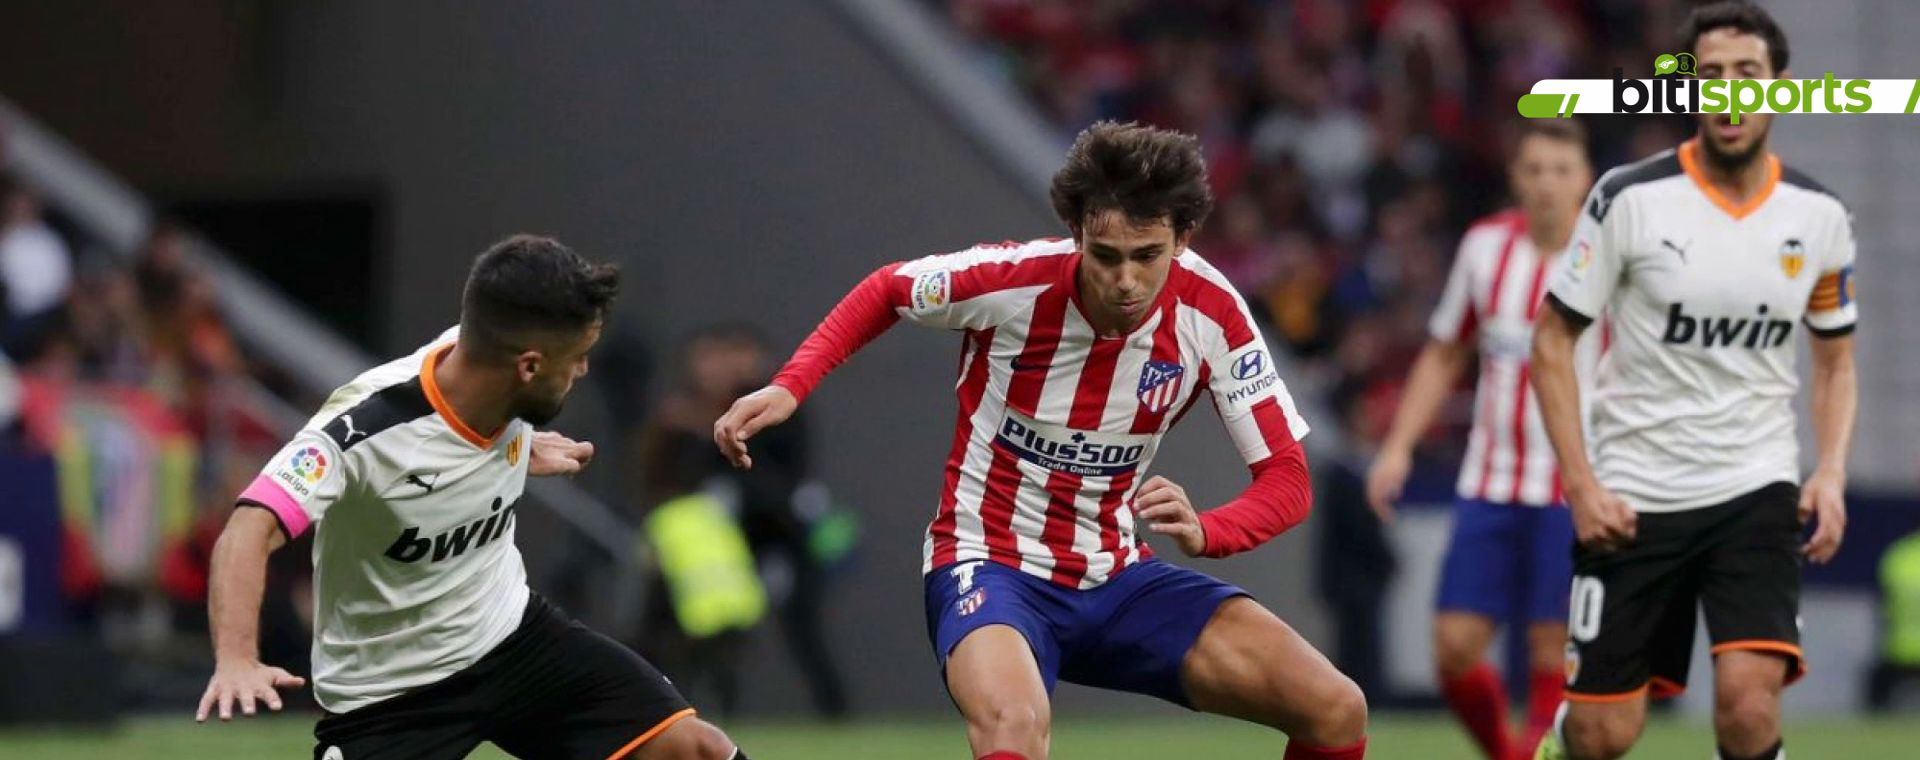 Atletico trying to extend their lead